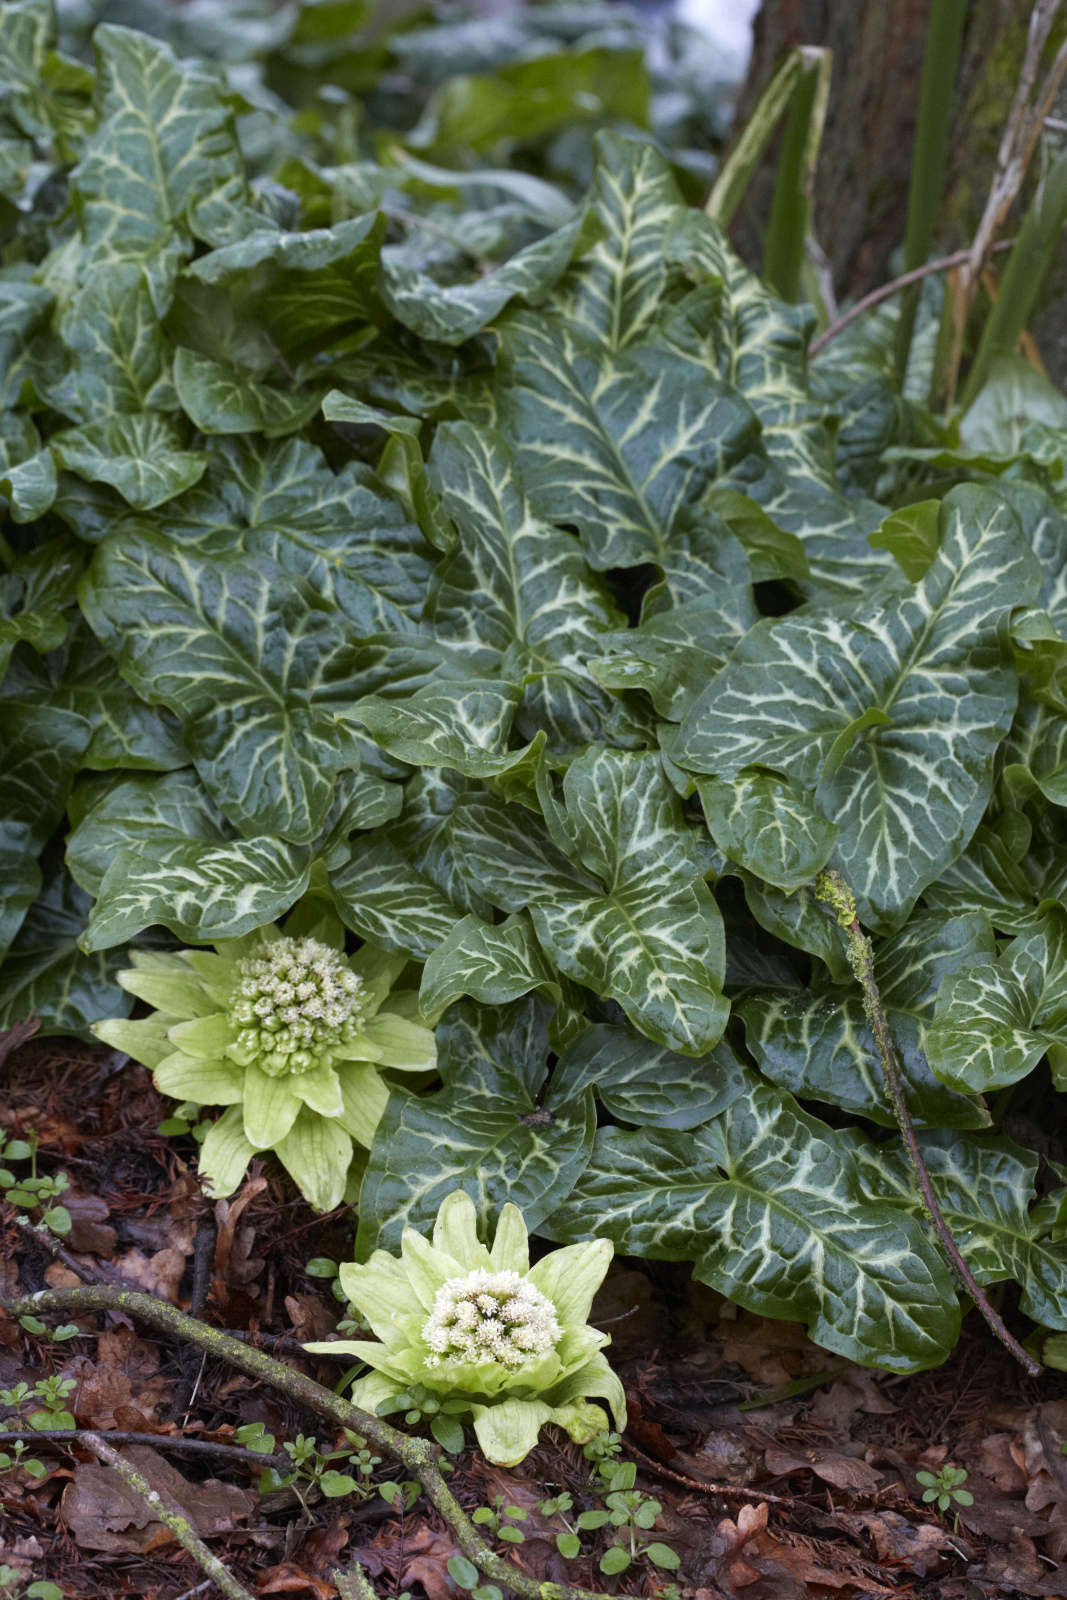 Petasites japonicusmingles with ground-covering arum at the Beth Chatto gardens.